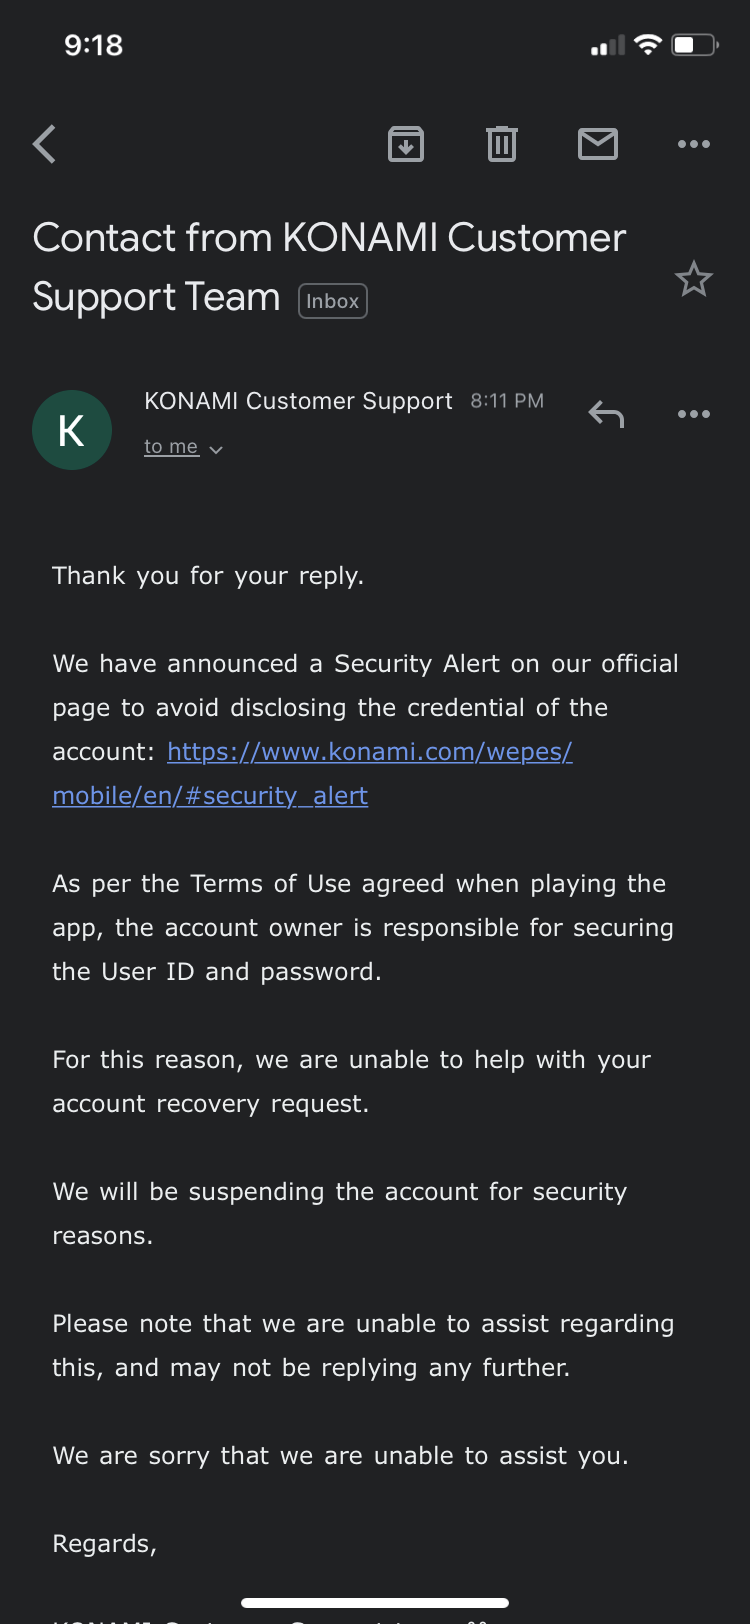 Game account got hacked and the company is not helping to retrieve the account back.